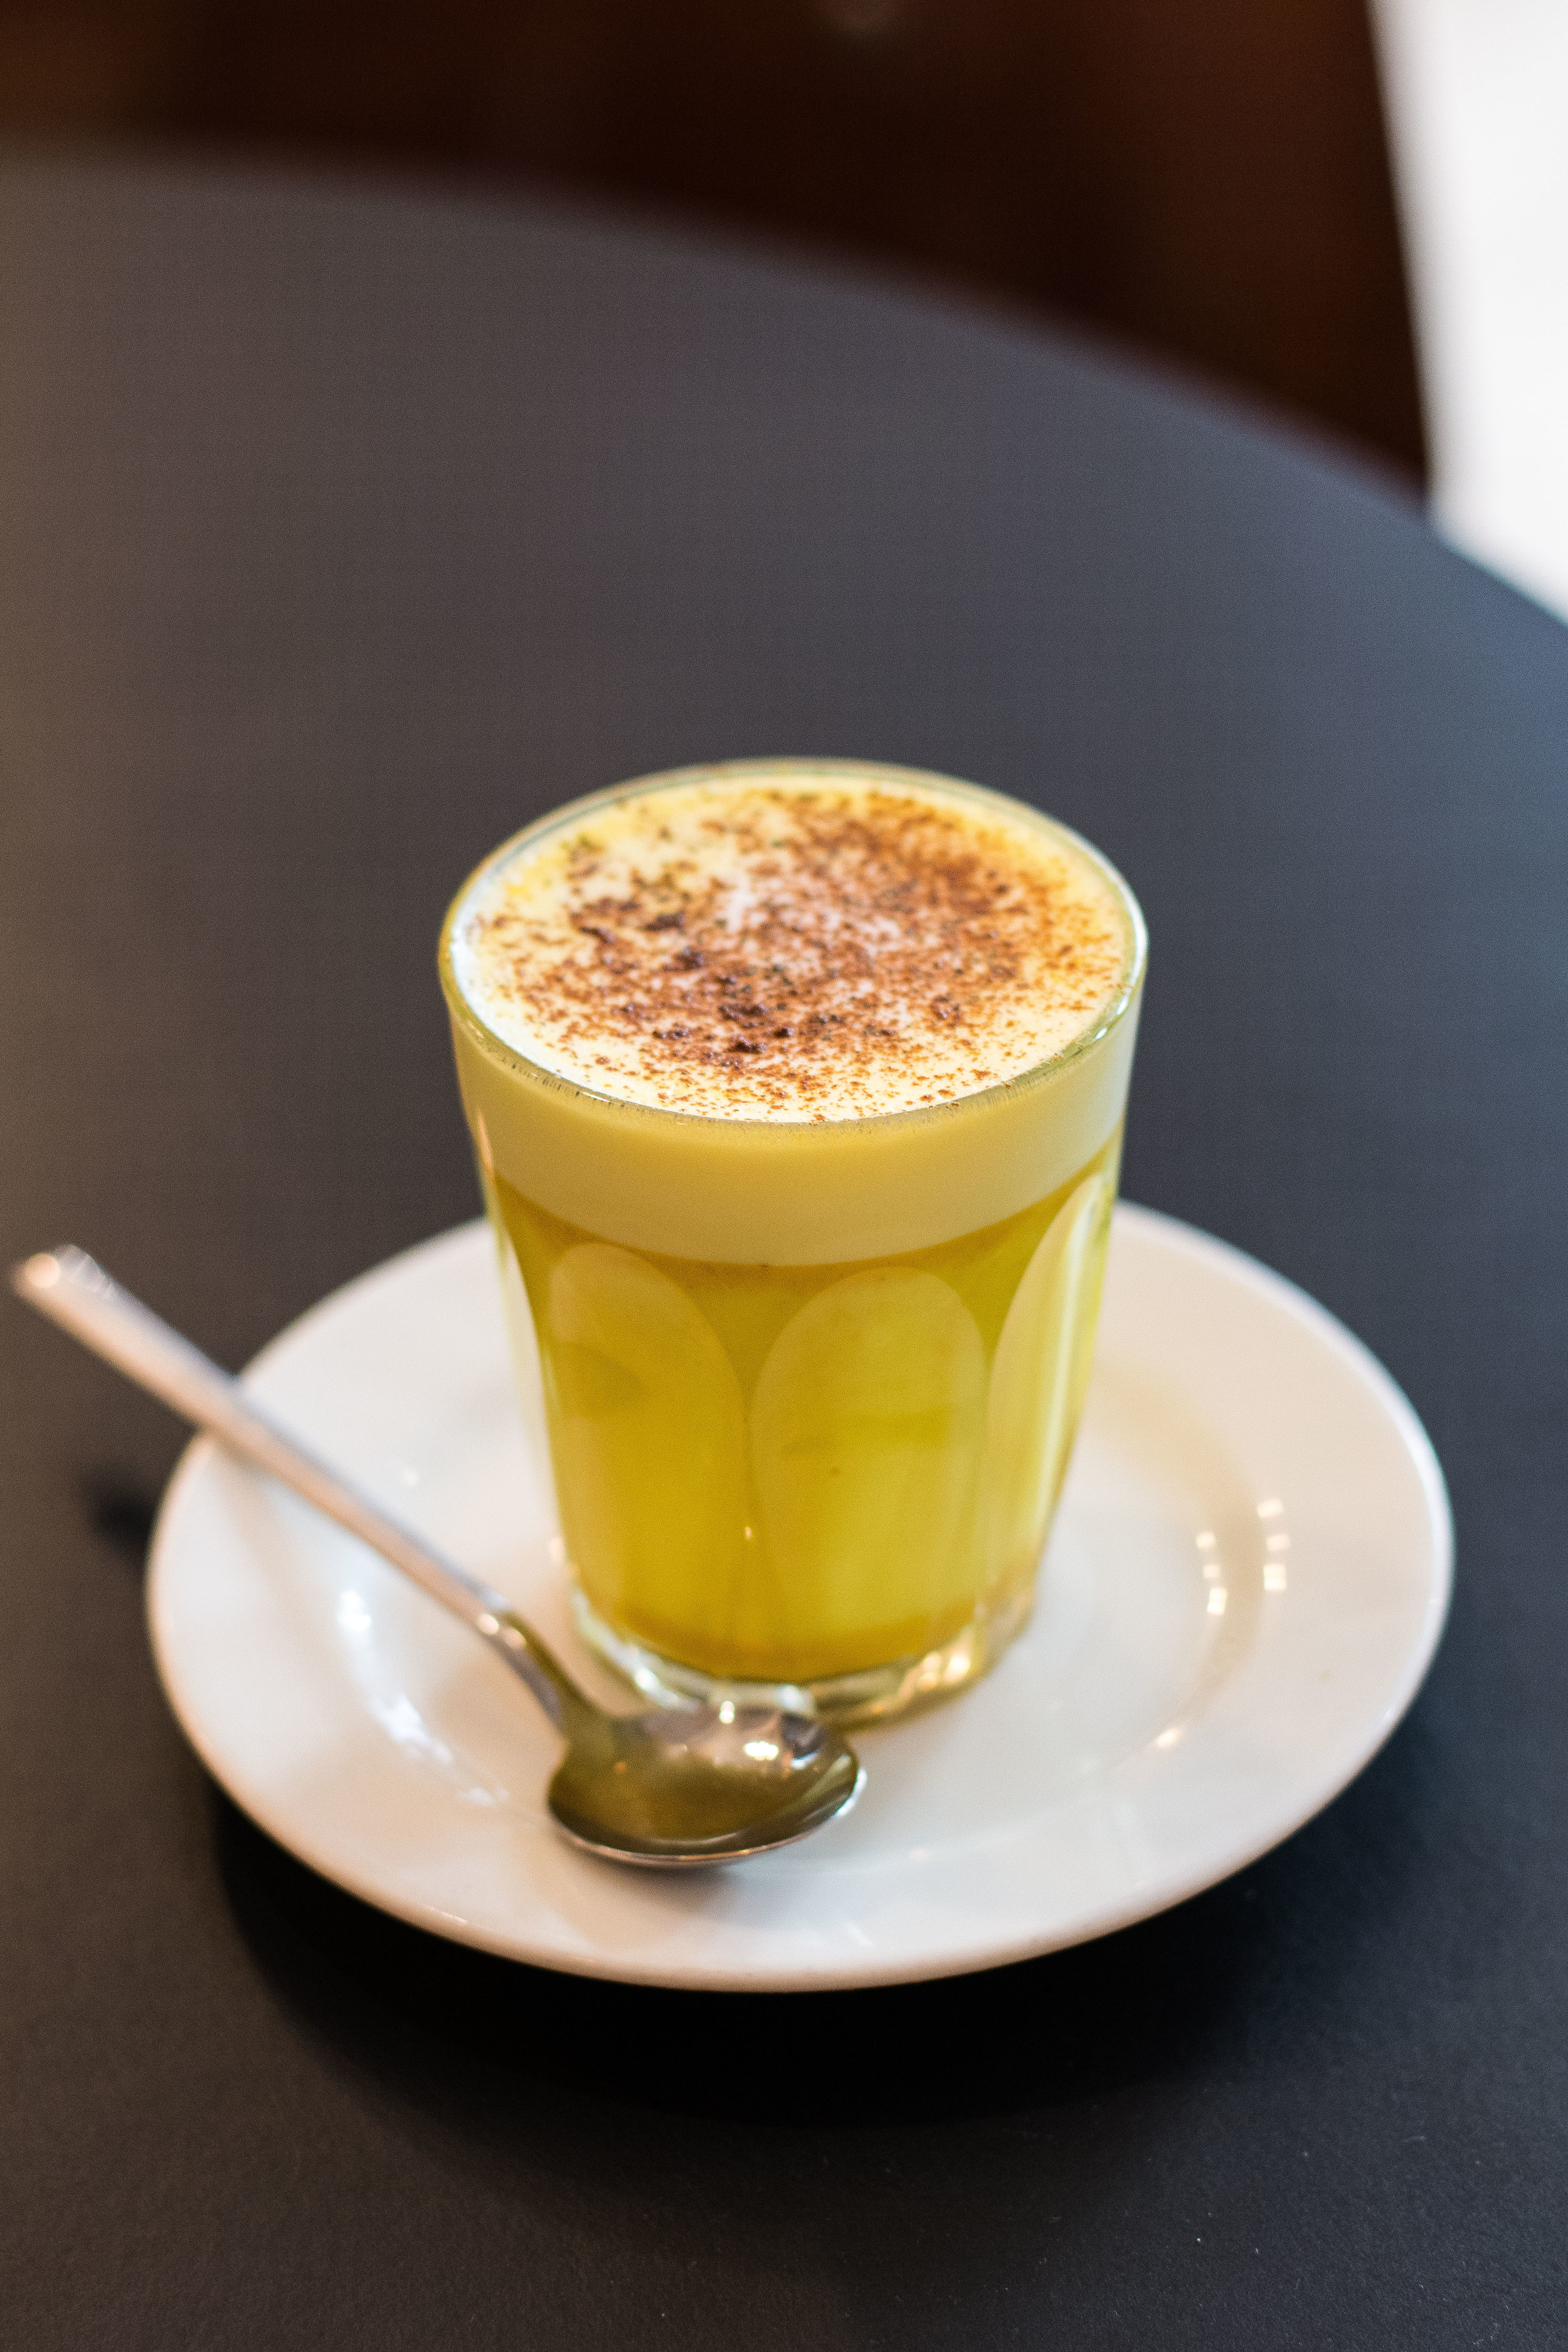 Turmeric Latte at Federal Cafe, Barcelona